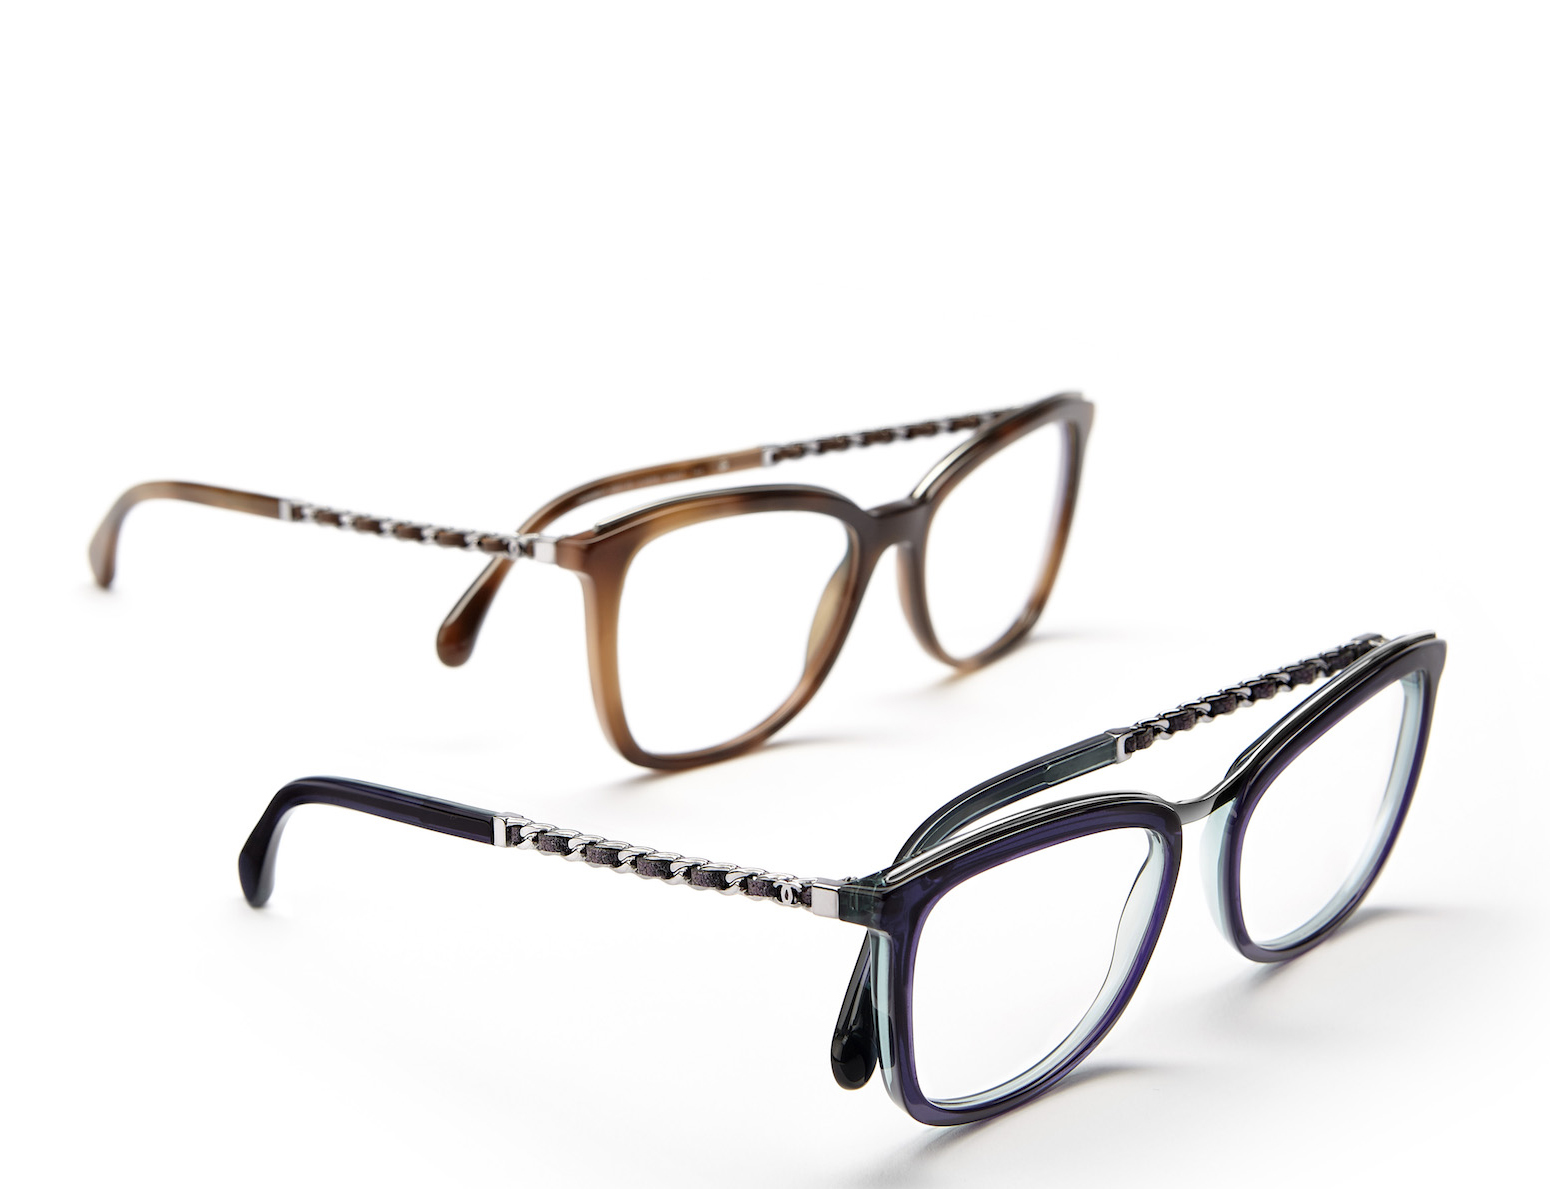 989d95ca013 CHANEL Share Coco Chain Eyewear Collection